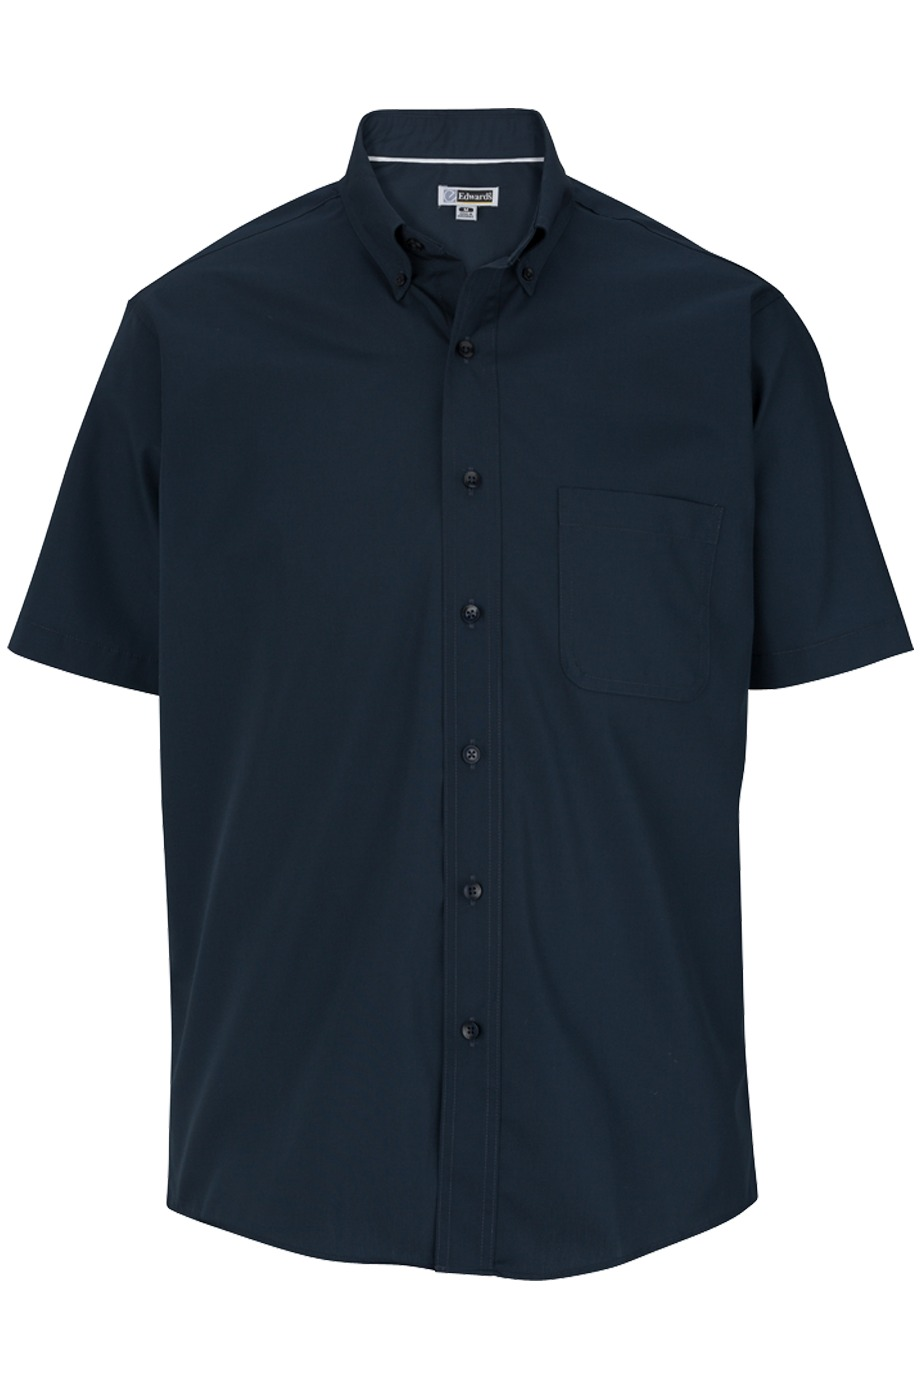 Edwards Garment 1245 - Men's Short Sleeve Soft Touch ...